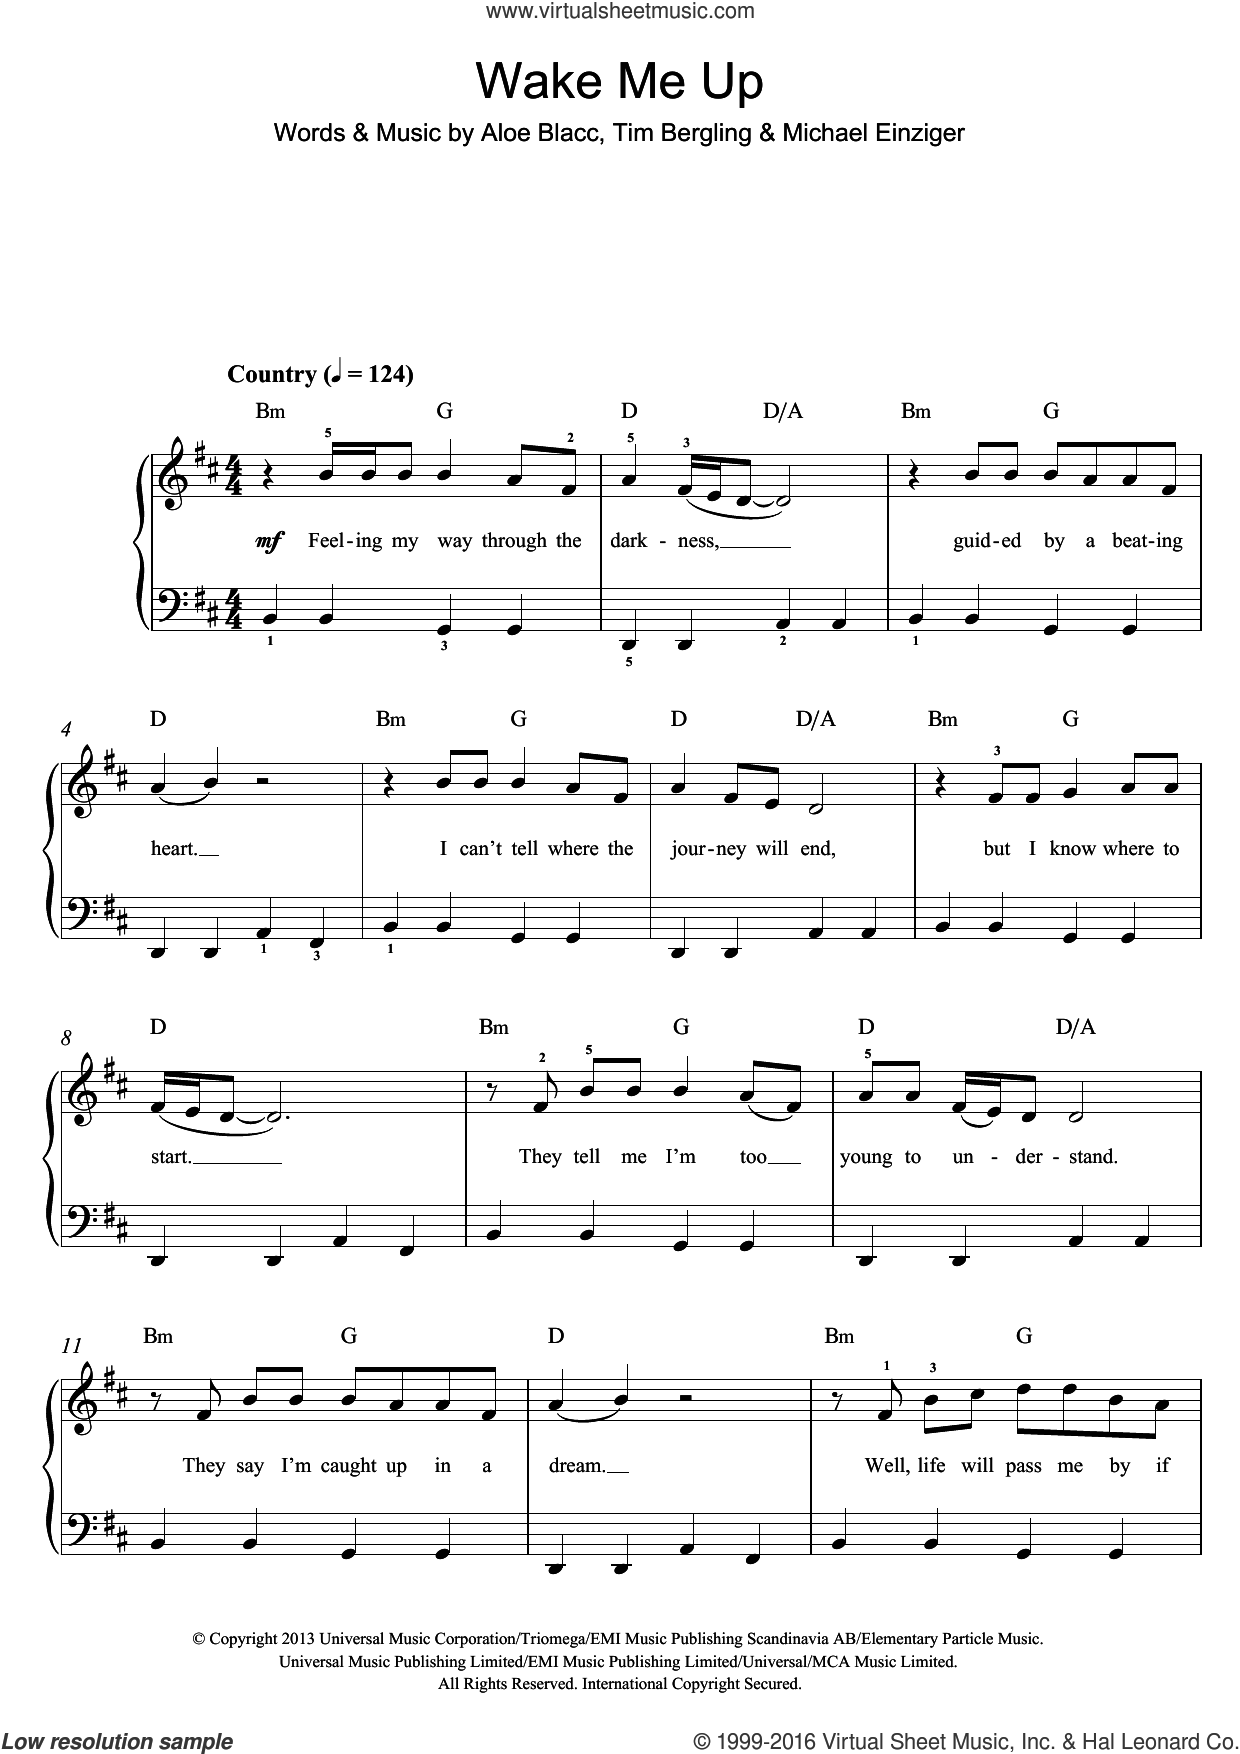 Wake Me Up sheet music for piano solo by Aloe Blacc, Avicii, Michael Einziger and Tim Bergling. Score Image Preview.